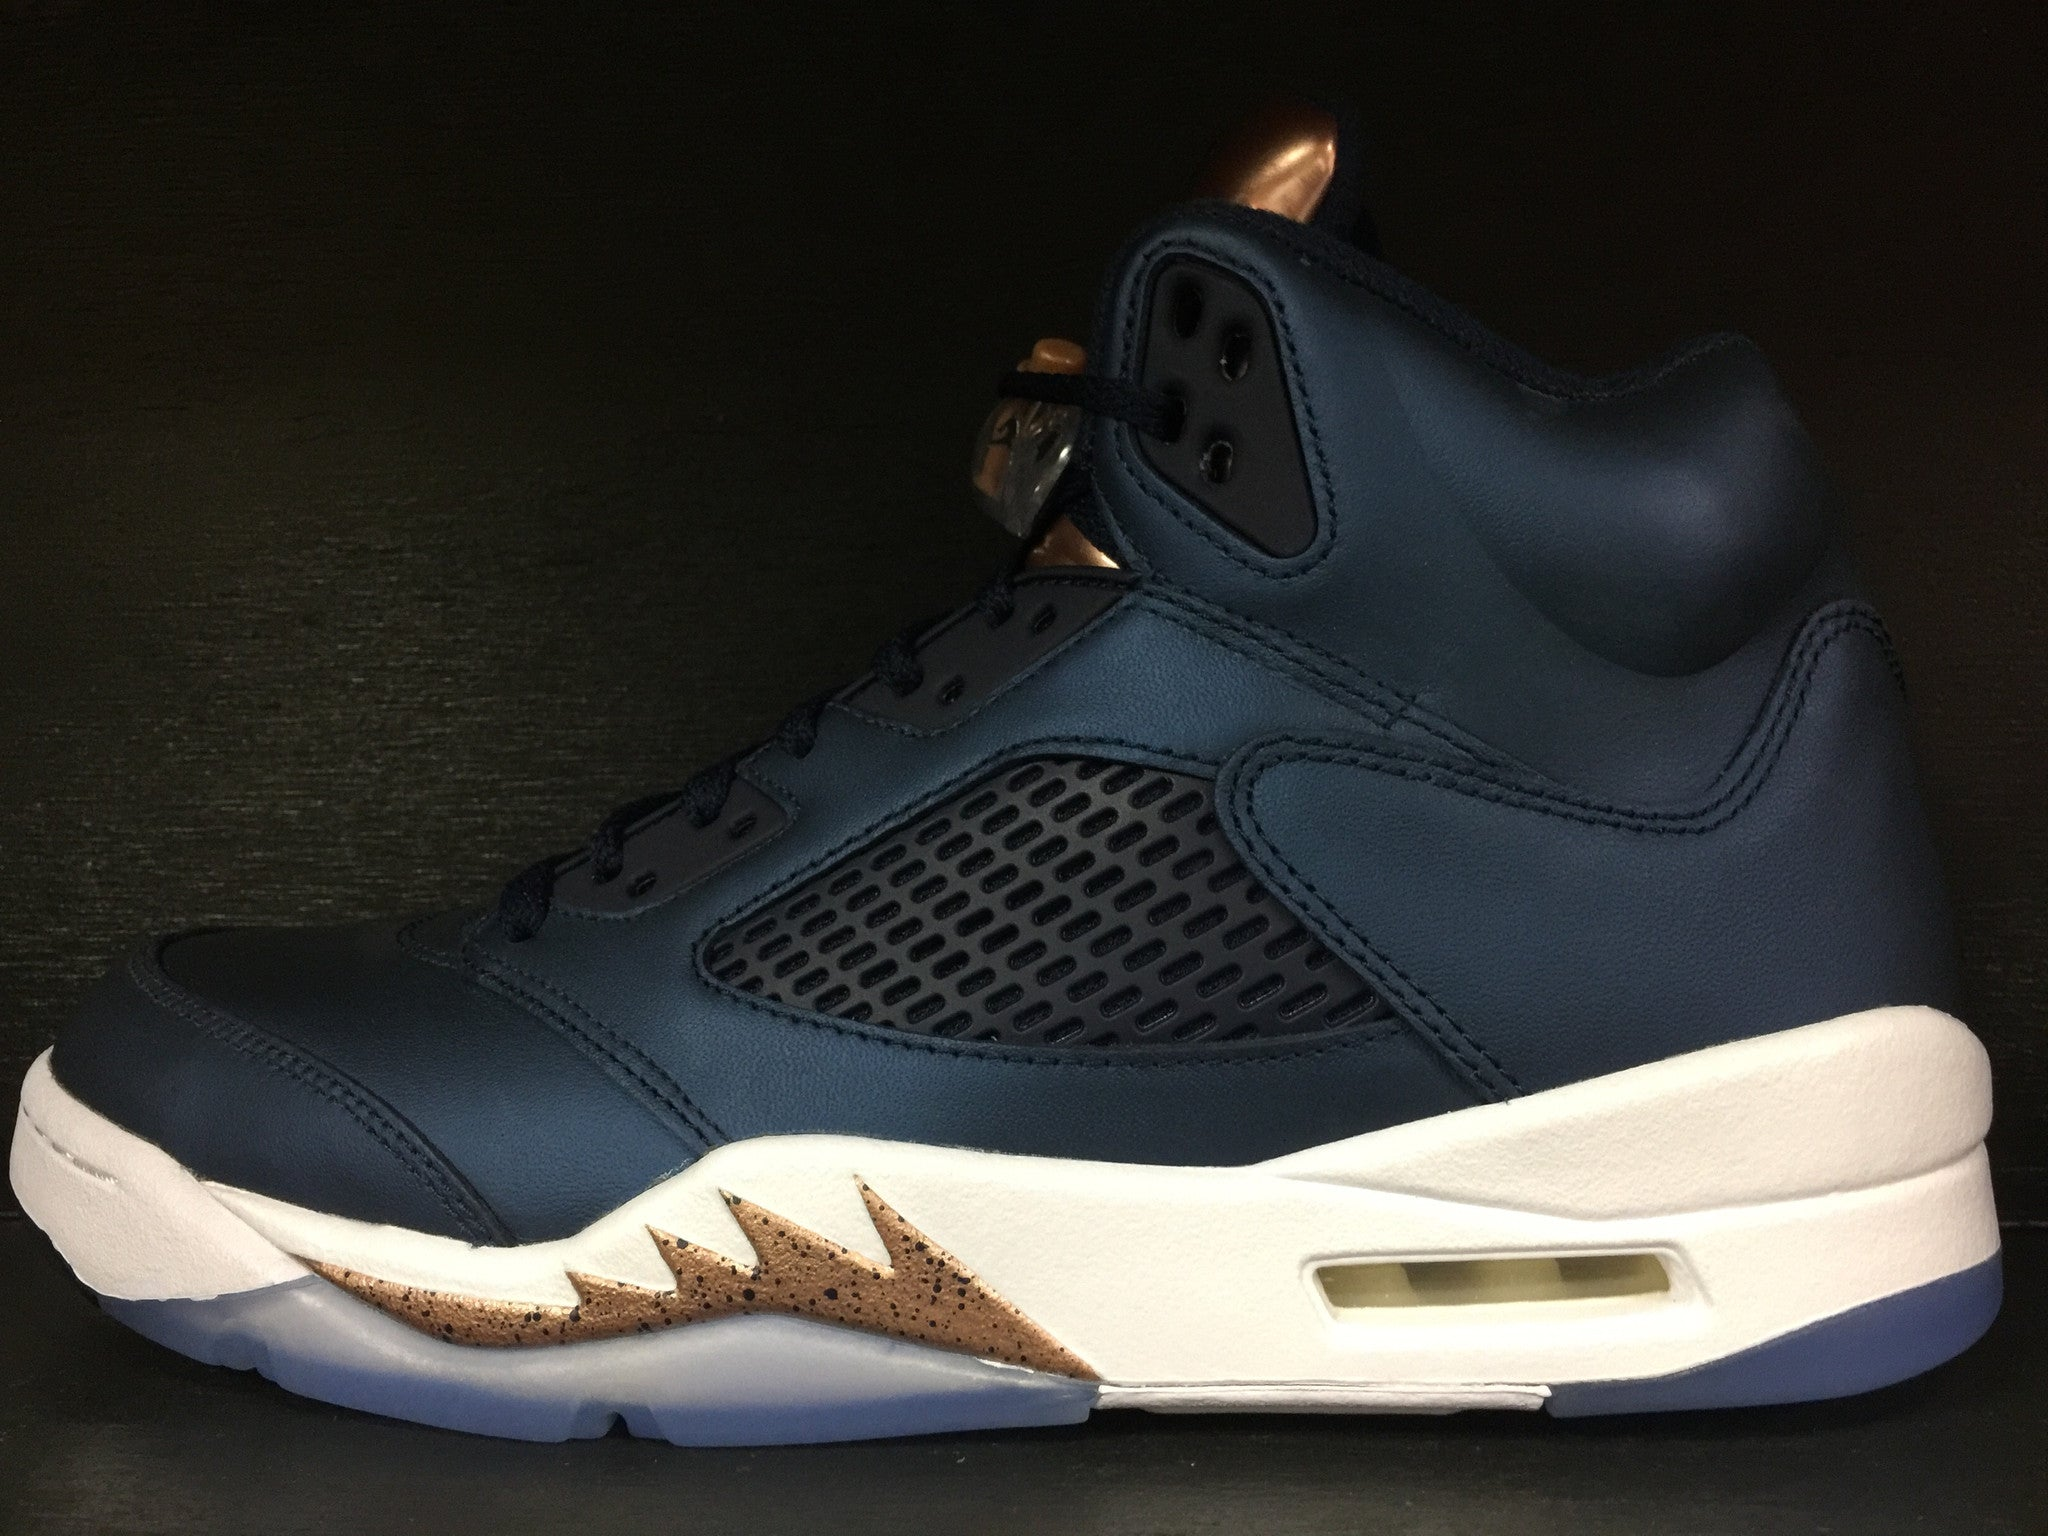 Air Jordan 5 Retro 'Bronze'